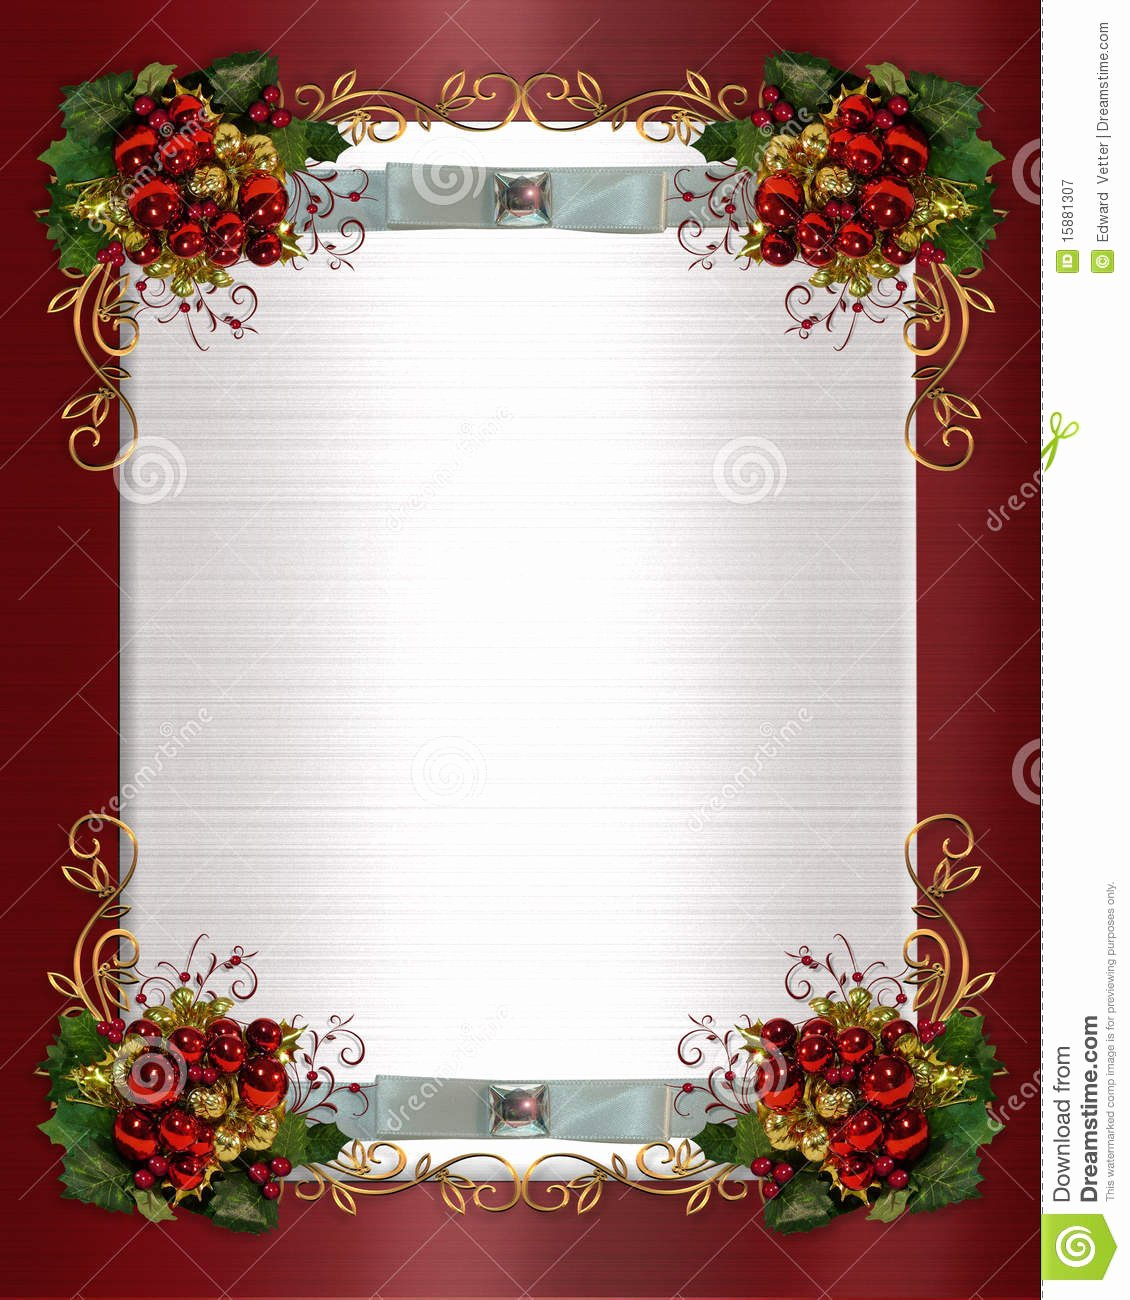 Microsoft Word Borders Templates Free Christmas